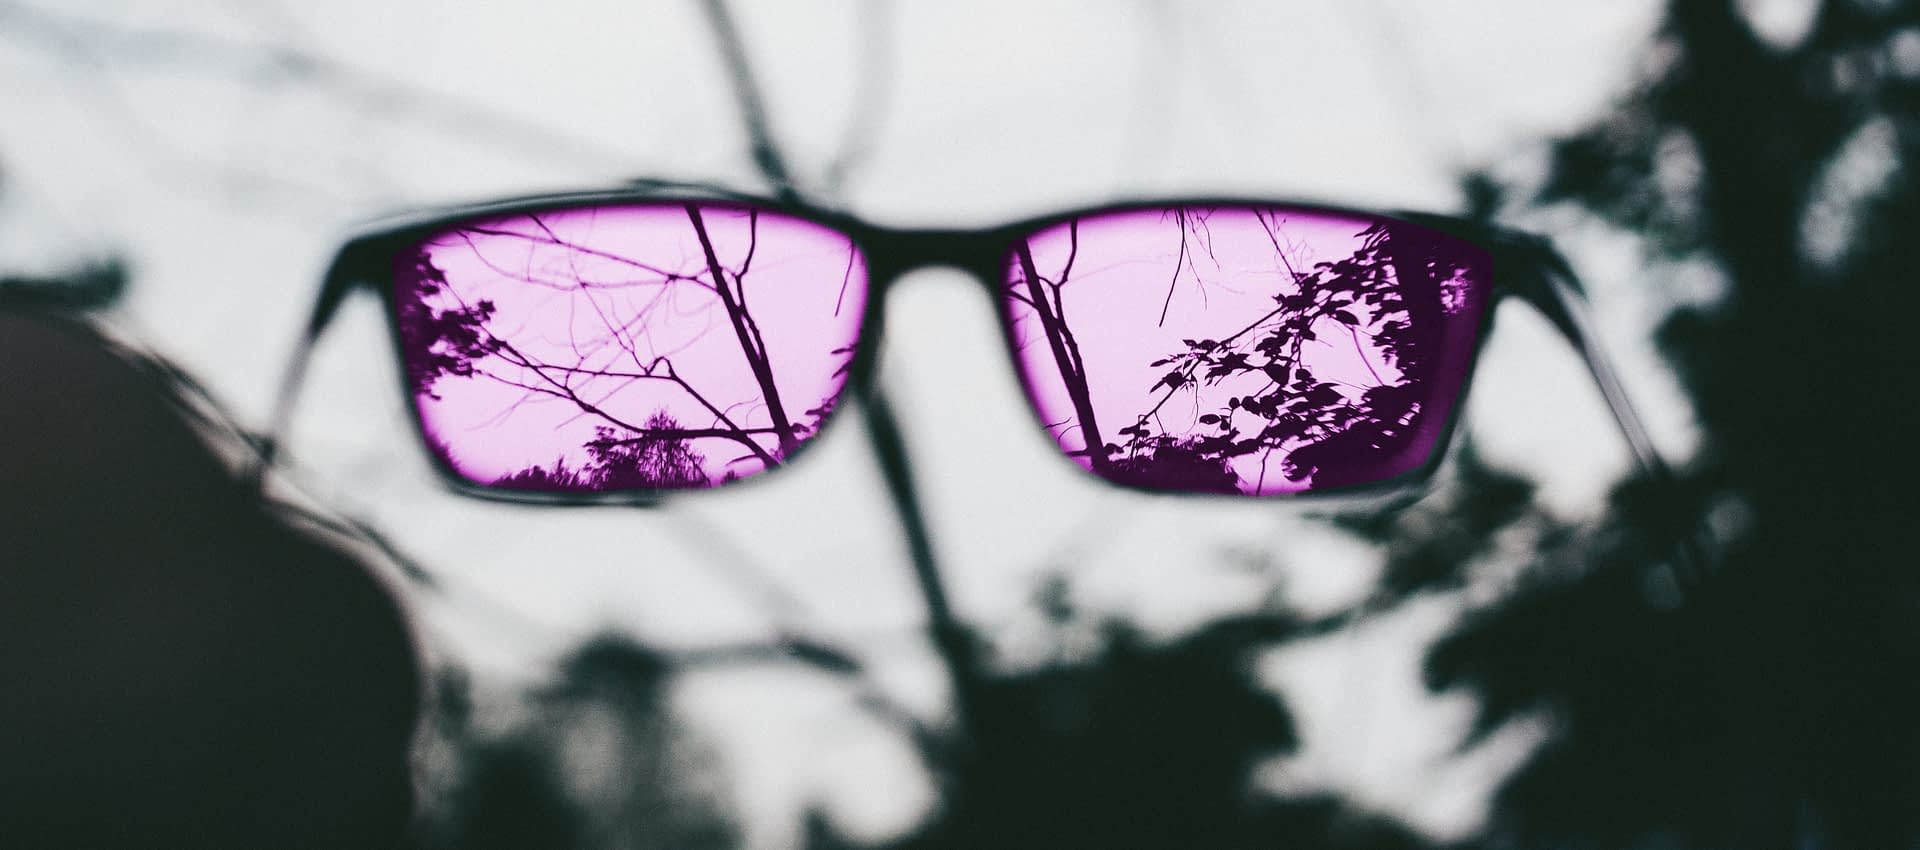 Take off the pink glasses